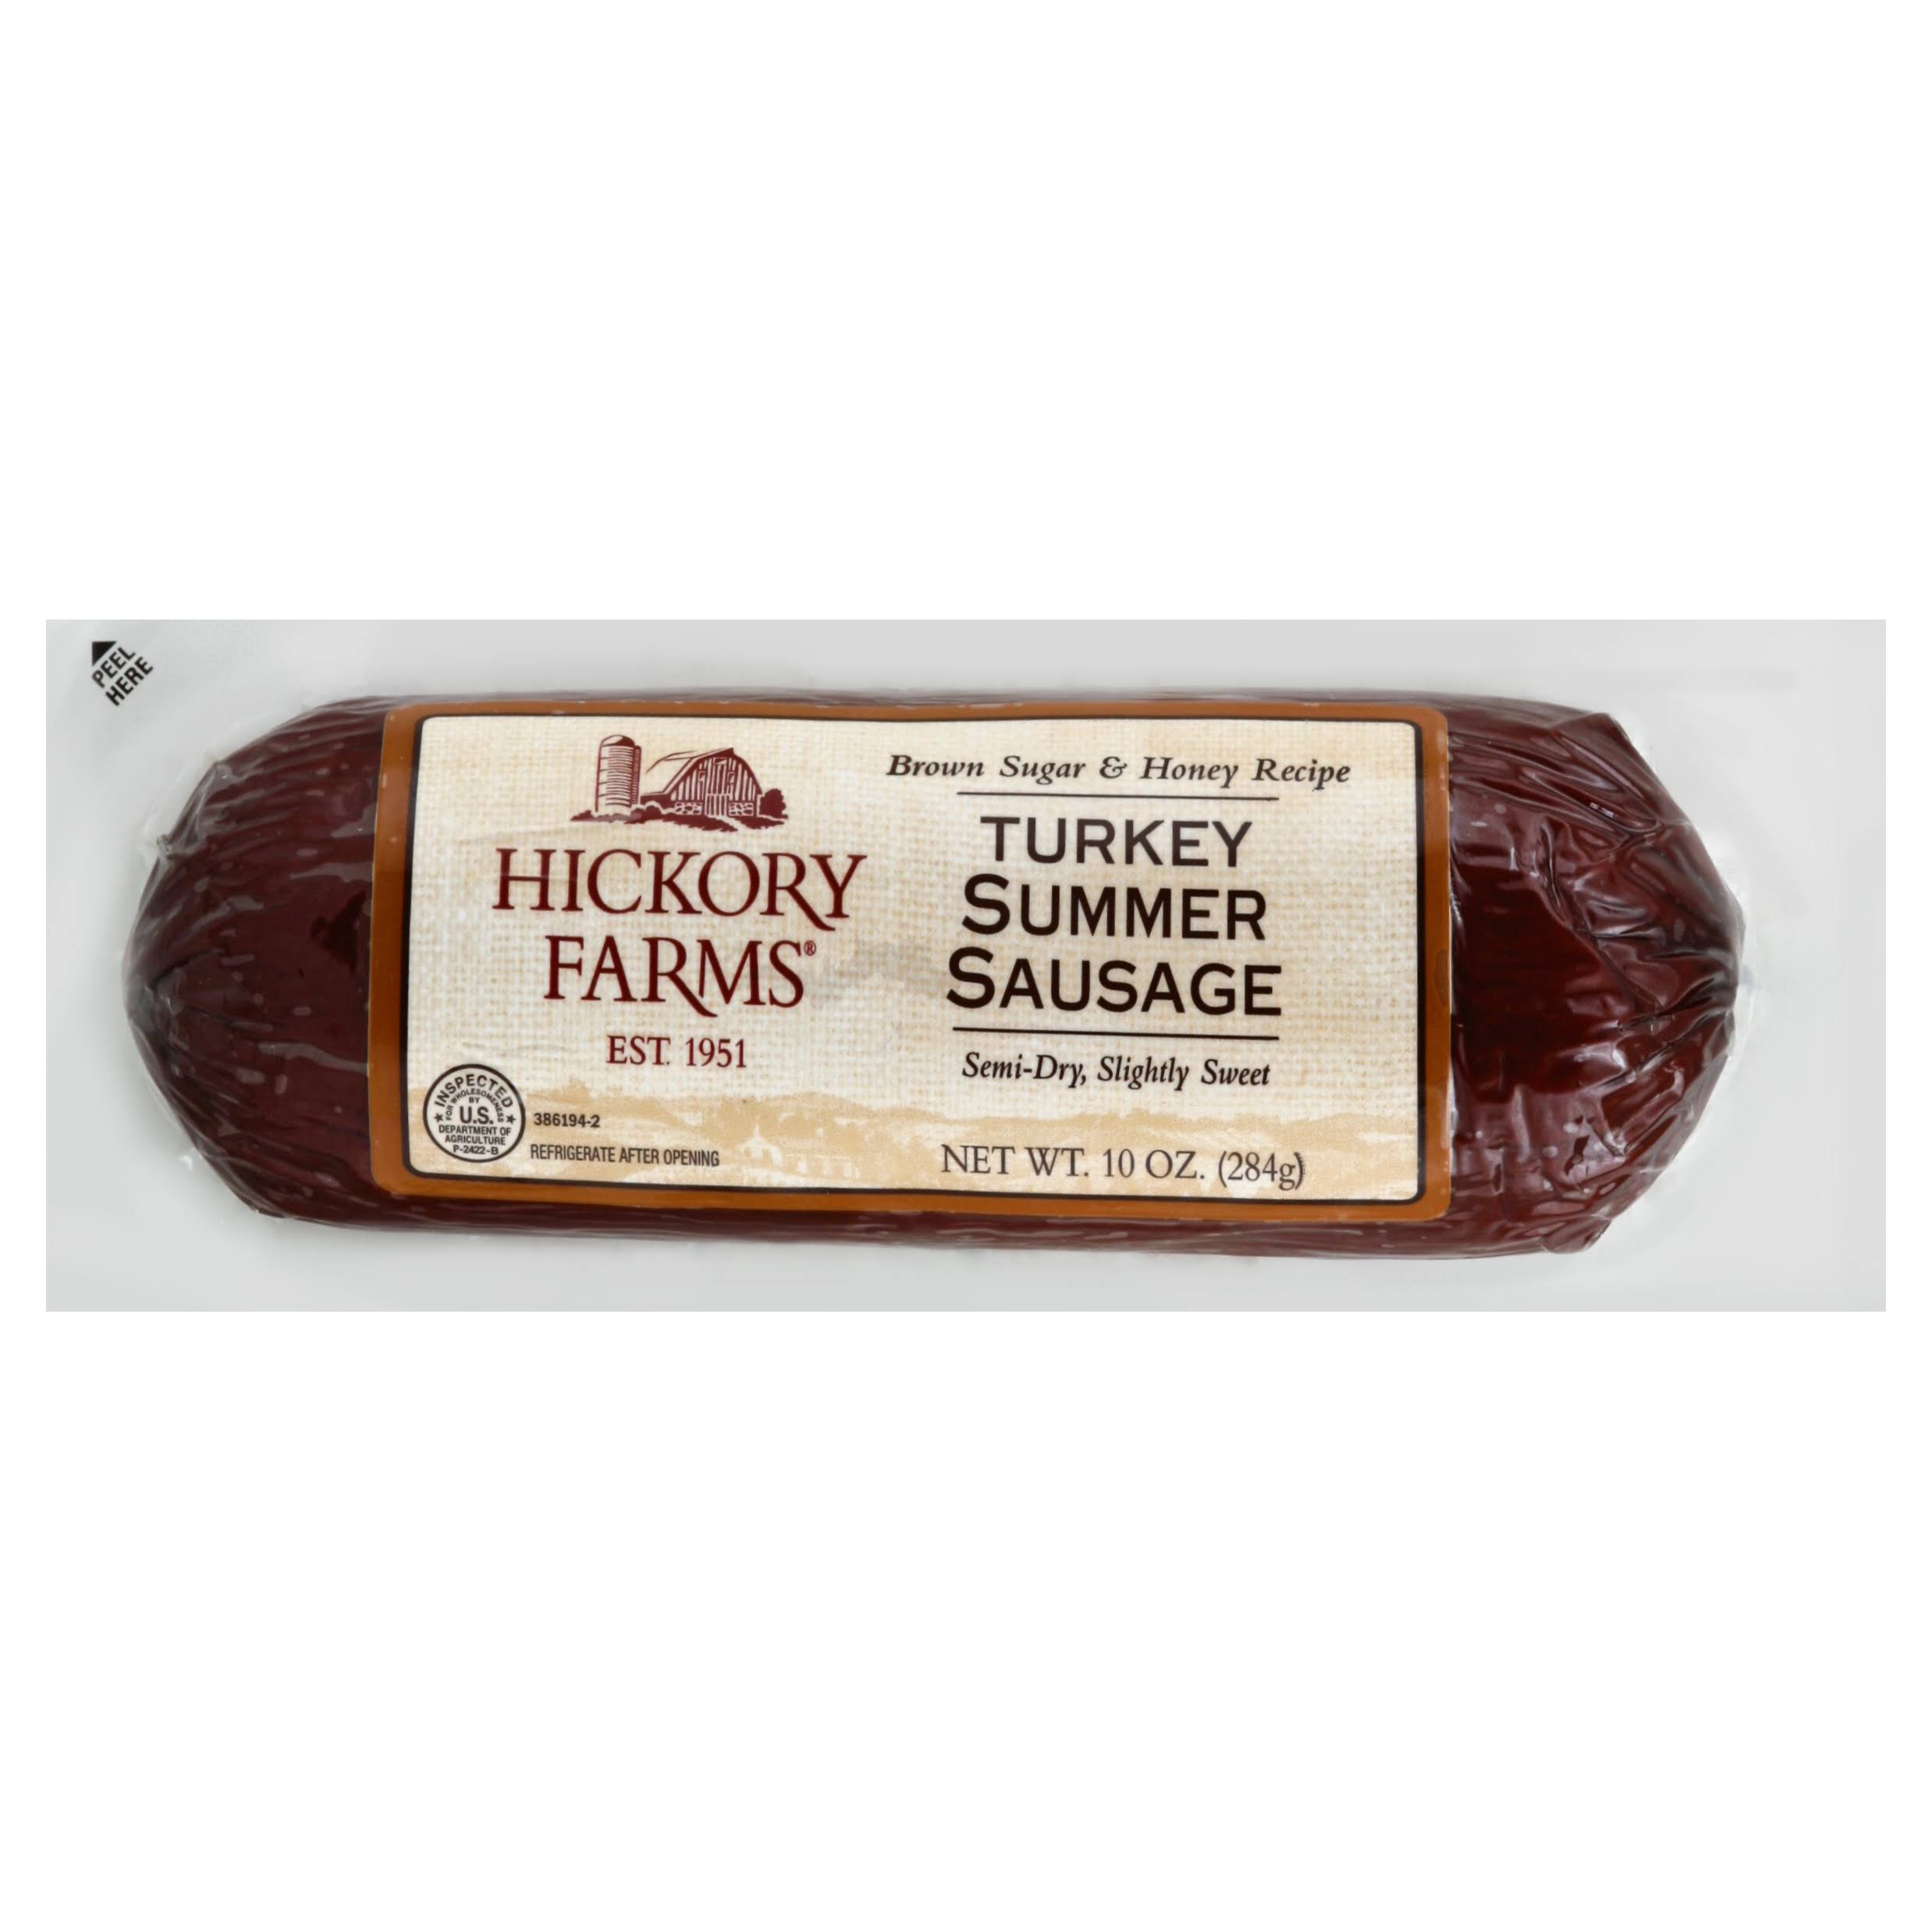 Hickory Farms Summer Sausage, Turkey, Brown Sugar & Honey Recipe - 10 oz